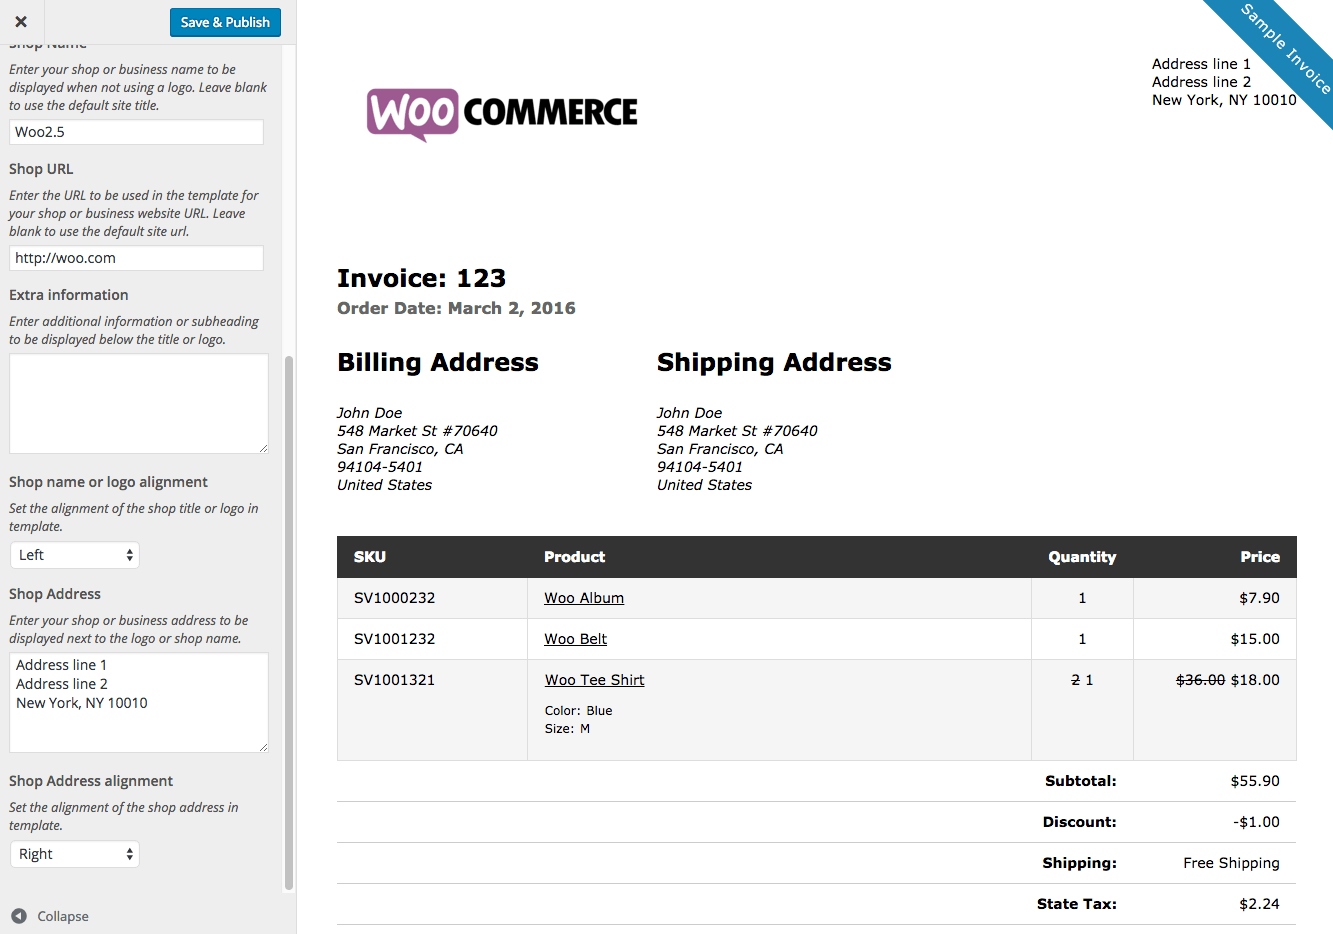 Breakupus  Pleasant Woocommerce Print Invoices Amp Packing Lists  Woocommerce Docs With Fetching Woocommerce Print Invoices  Packing Lists Customizer With Amazing Invoice Booklets Also Consulting Invoice Templates In Addition Ebay Invoices For Sellers And Sample Of Invoice Letter As Well As Electronic Invoice Software Additionally Print Invoice Online From Docswoocommercecom With Breakupus  Fetching Woocommerce Print Invoices Amp Packing Lists  Woocommerce Docs With Amazing Woocommerce Print Invoices  Packing Lists Customizer And Pleasant Invoice Booklets Also Consulting Invoice Templates In Addition Ebay Invoices For Sellers From Docswoocommercecom